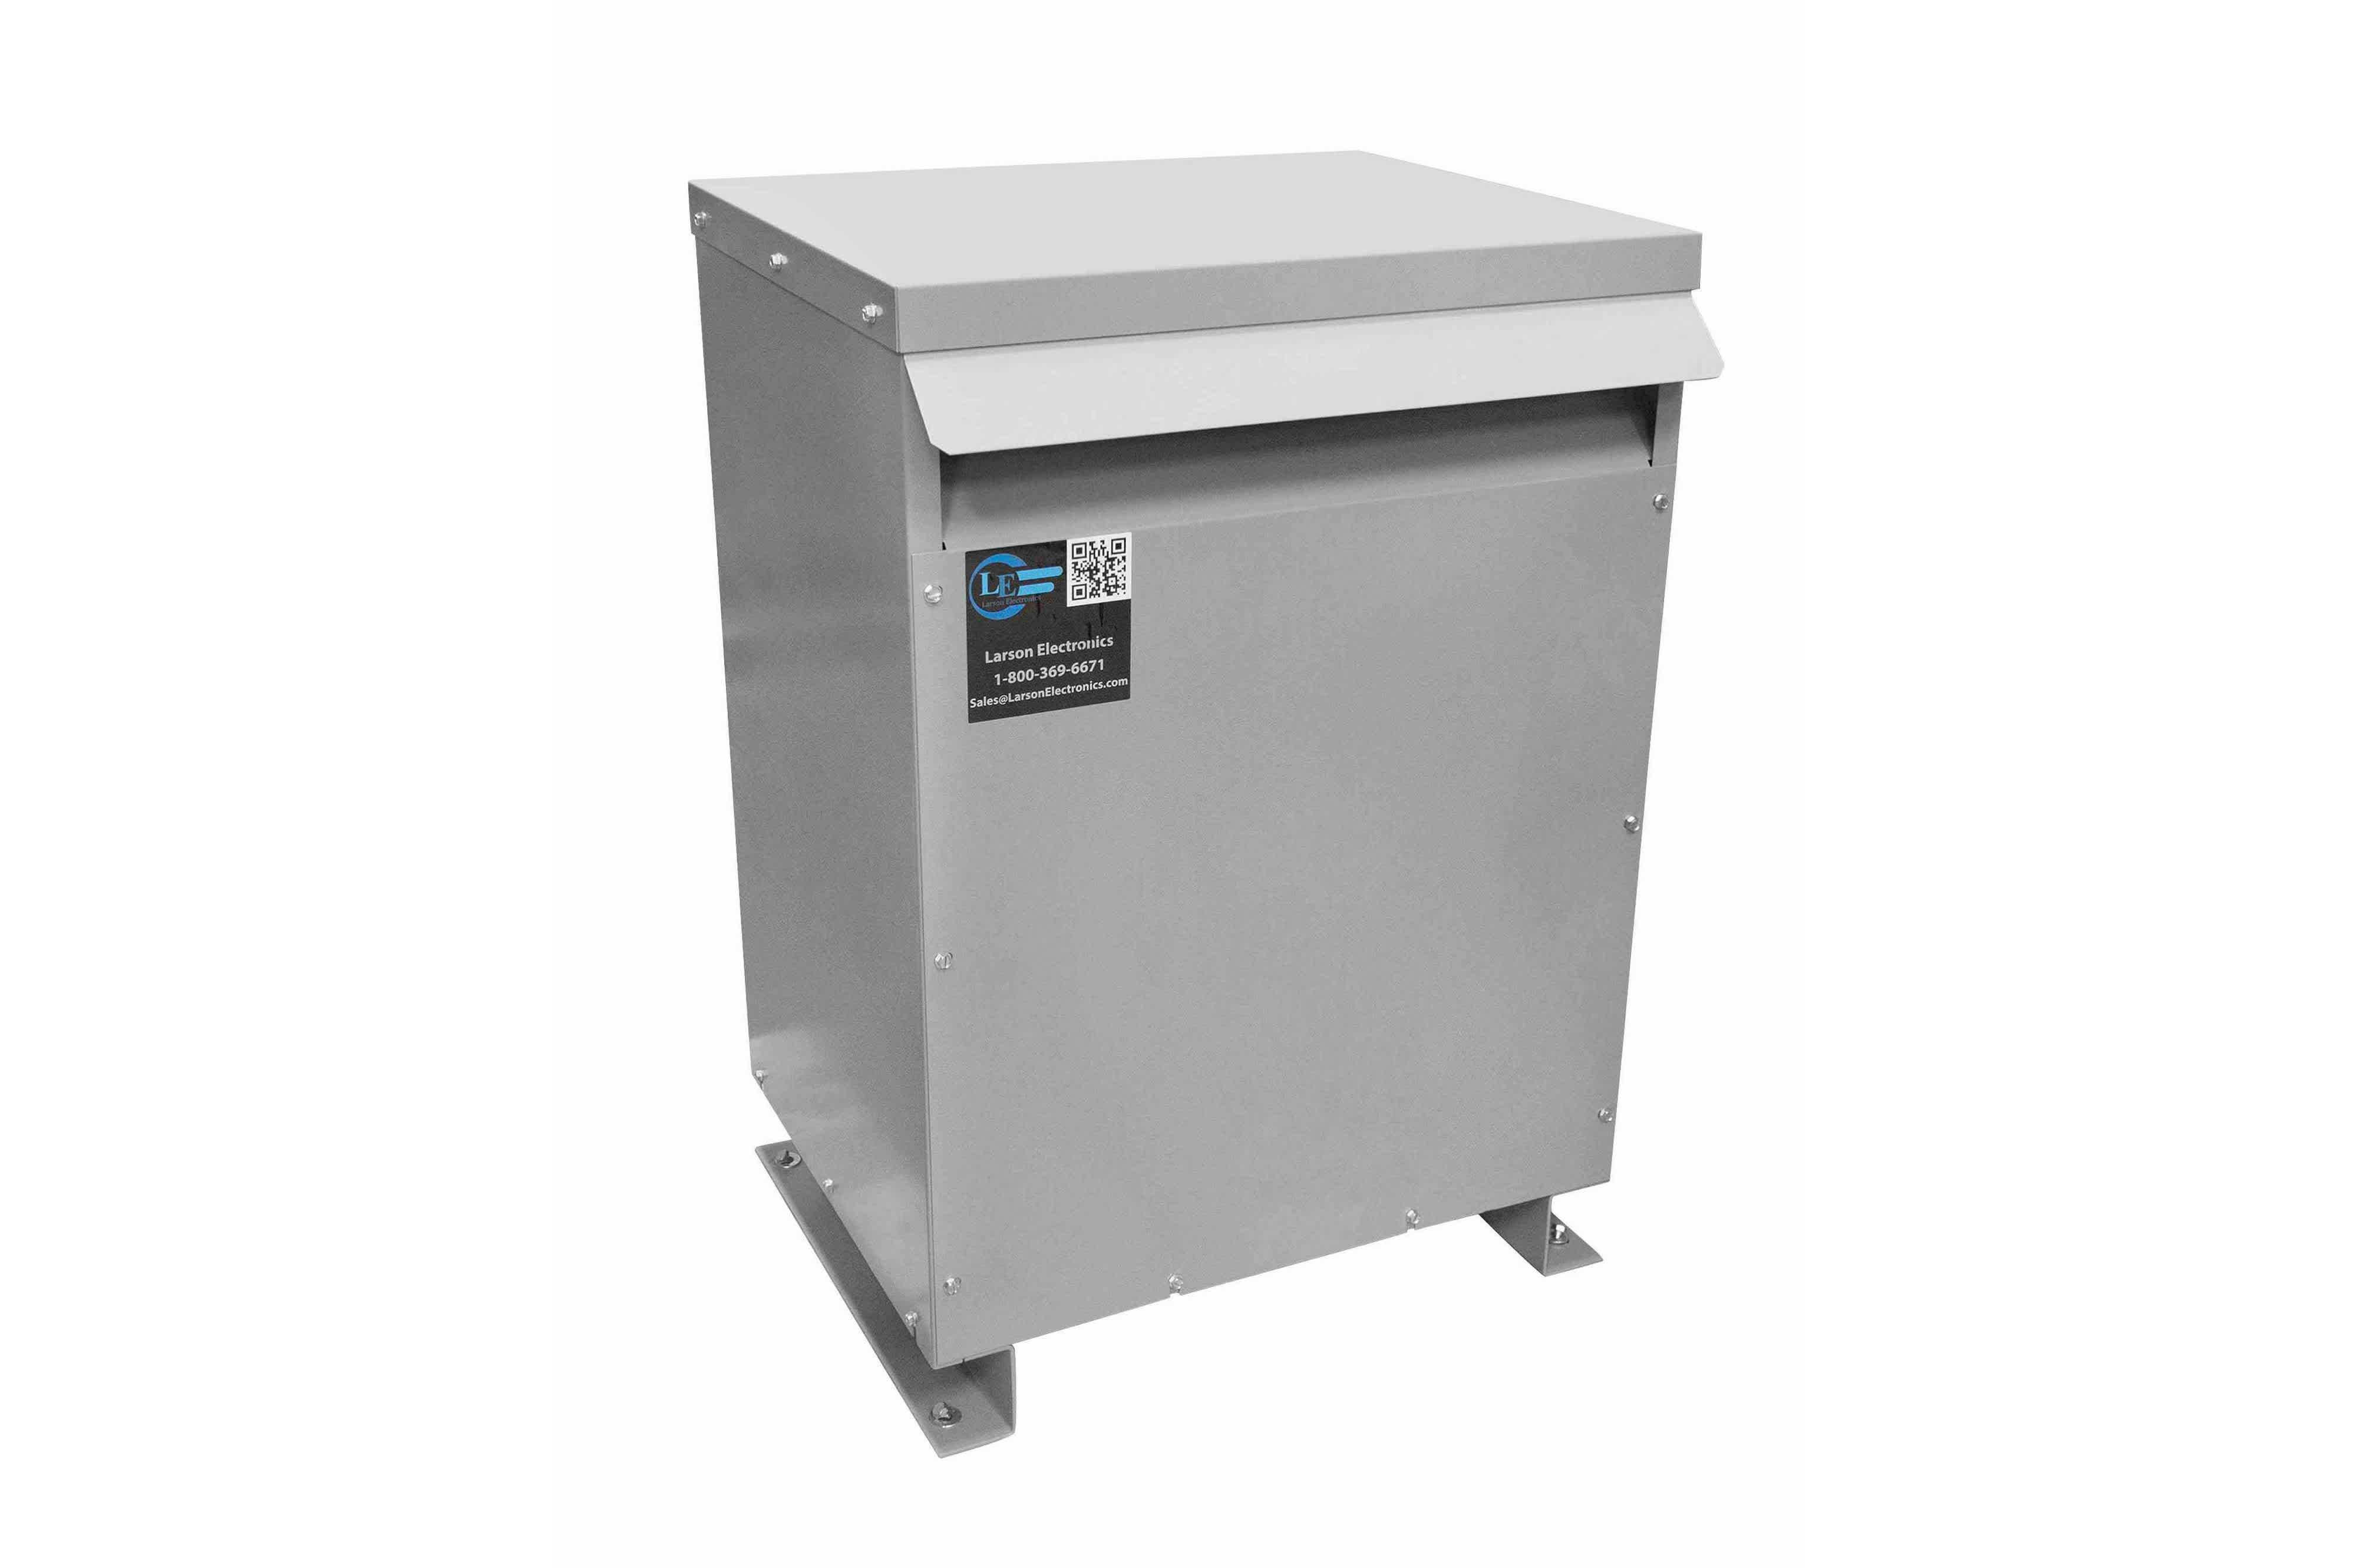 75 kVA 3PH Isolation Transformer, 480V Wye Primary, 240V/120 Delta Secondary, N3R, Ventilated, 60 Hz